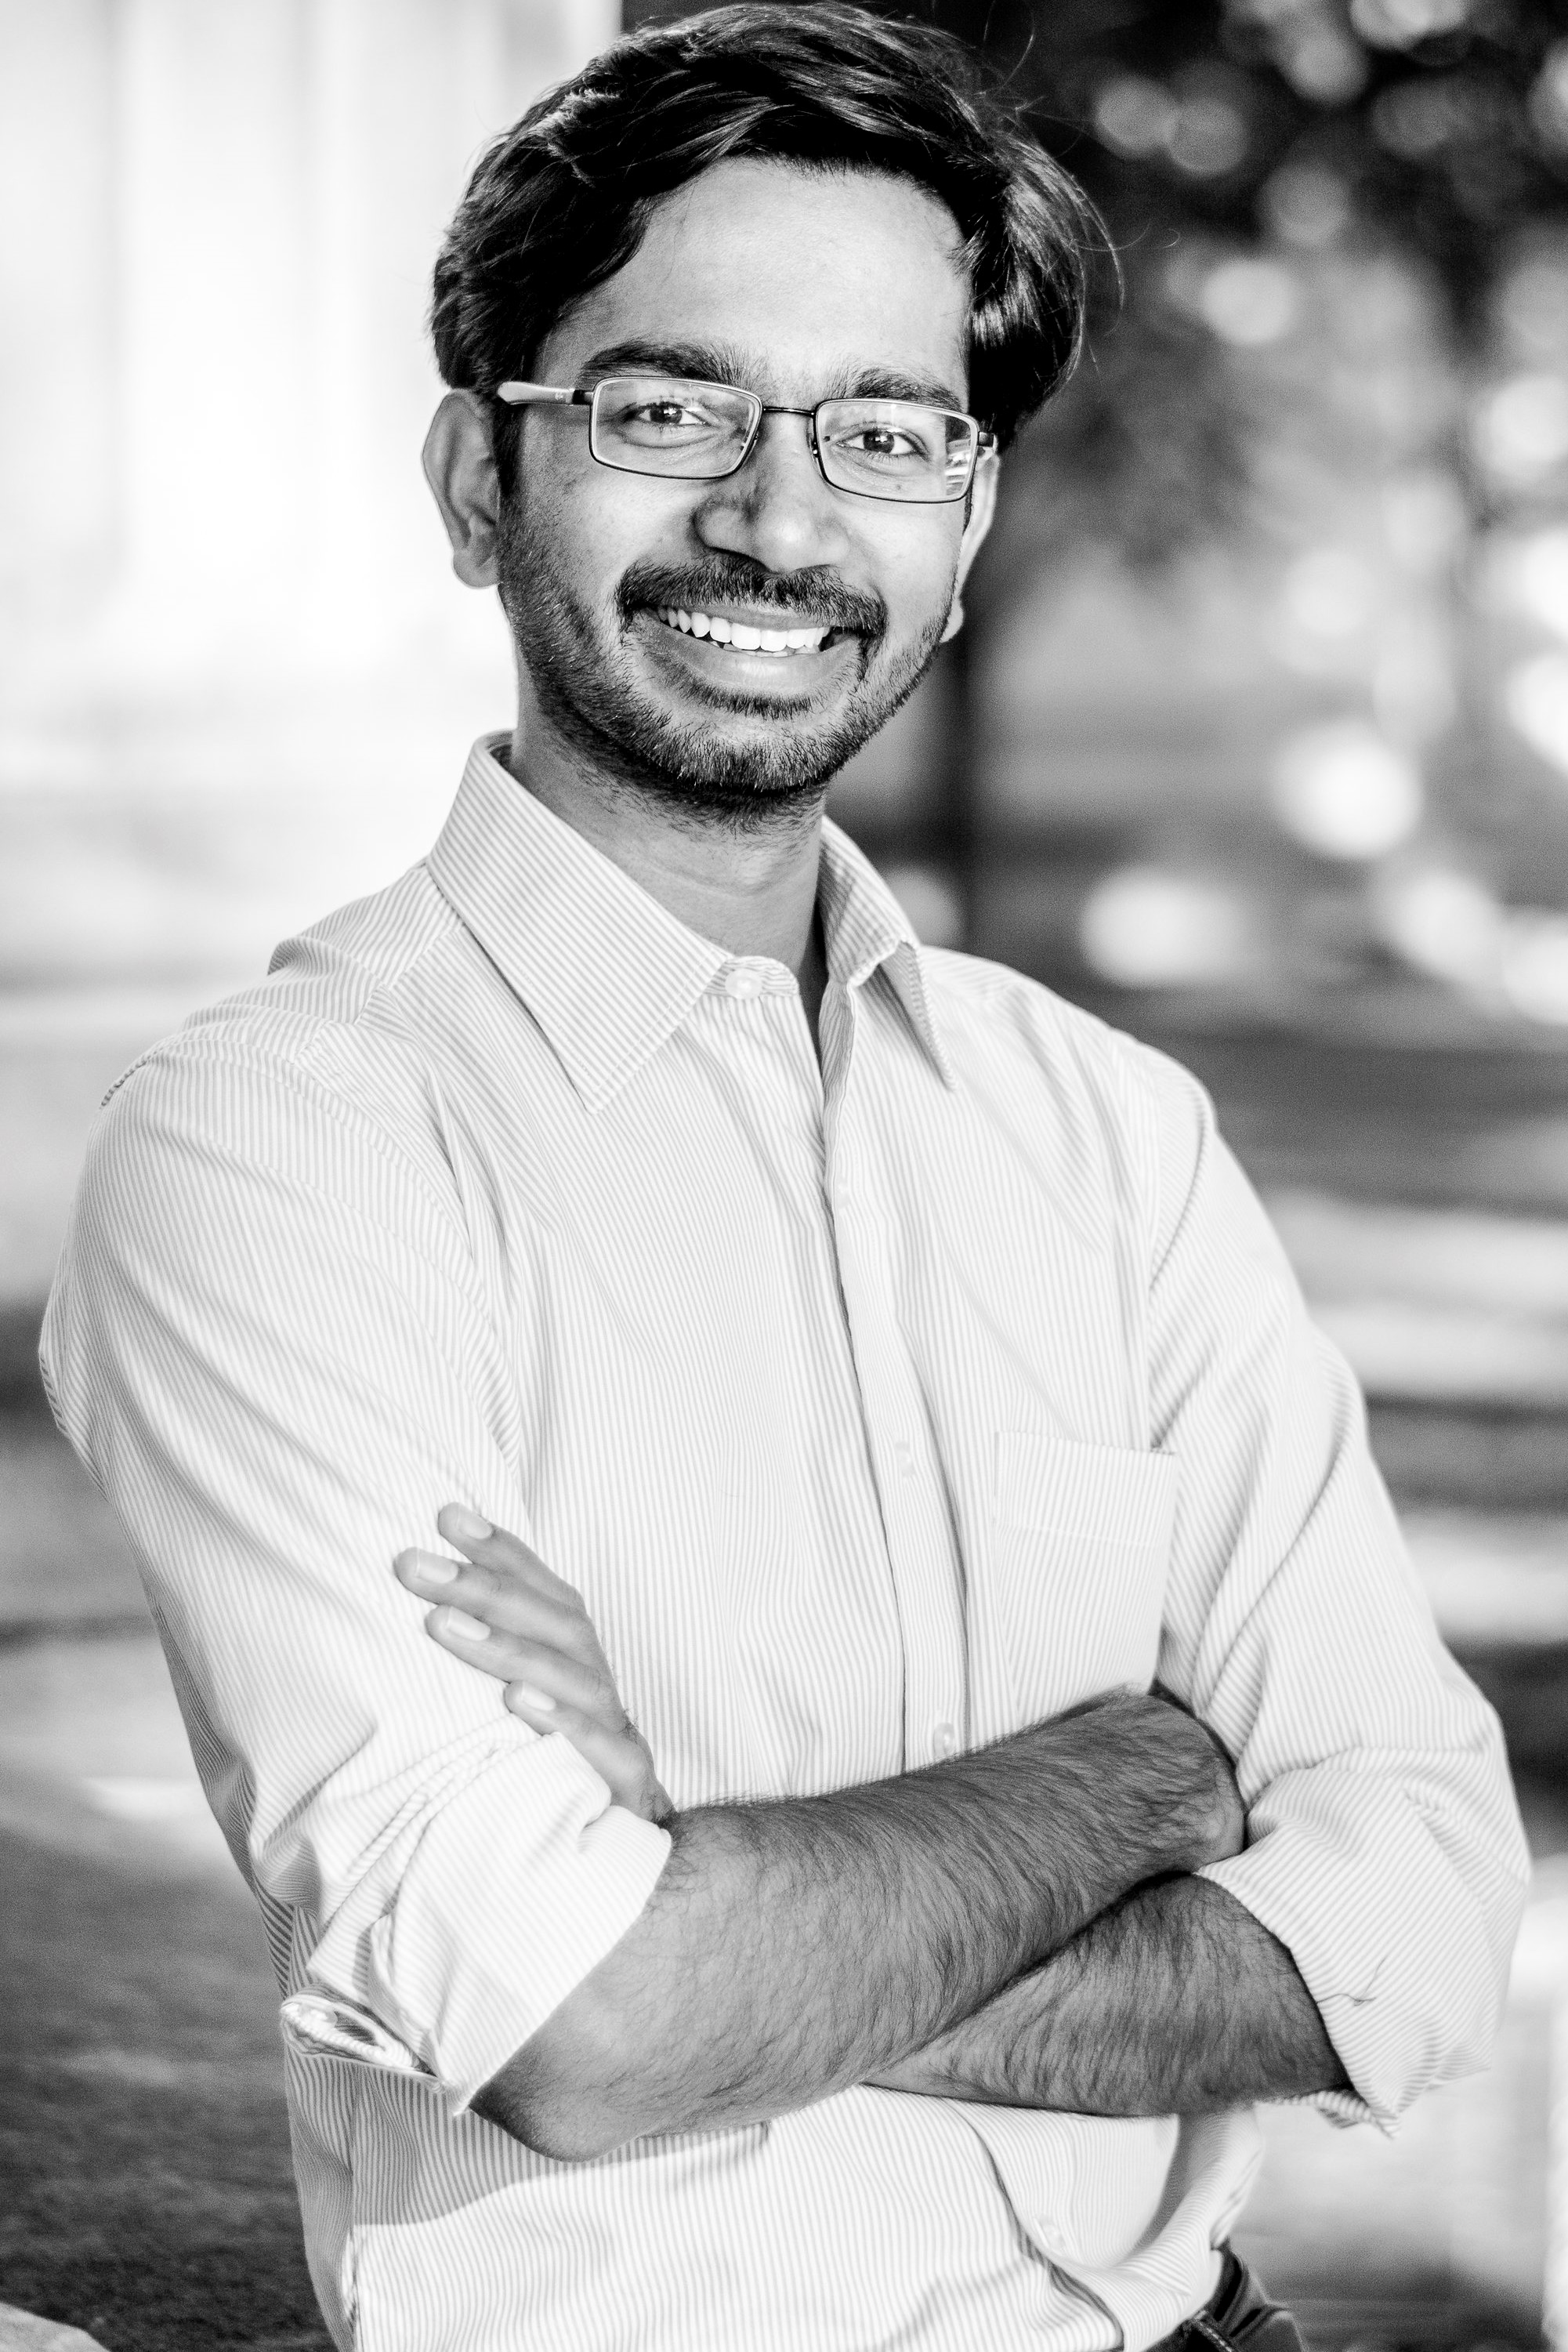 Prashanth Prakash - MIT  Prashanth is a PhD student in the Department of Aeronautics and Astronautics at MIT. He hails from Chennai, a tropical, bustling metropolitan city in southern India. Prashanth completed his Master's Degree at MIT in 2018. He has been fascinated with aeroplanes and flying since he was a child, which inspired him to study aeronautical engineering. Prashanth enjoys teaching engineering and science, and as participated in HSSP at MIT, as well as The Innovation League.